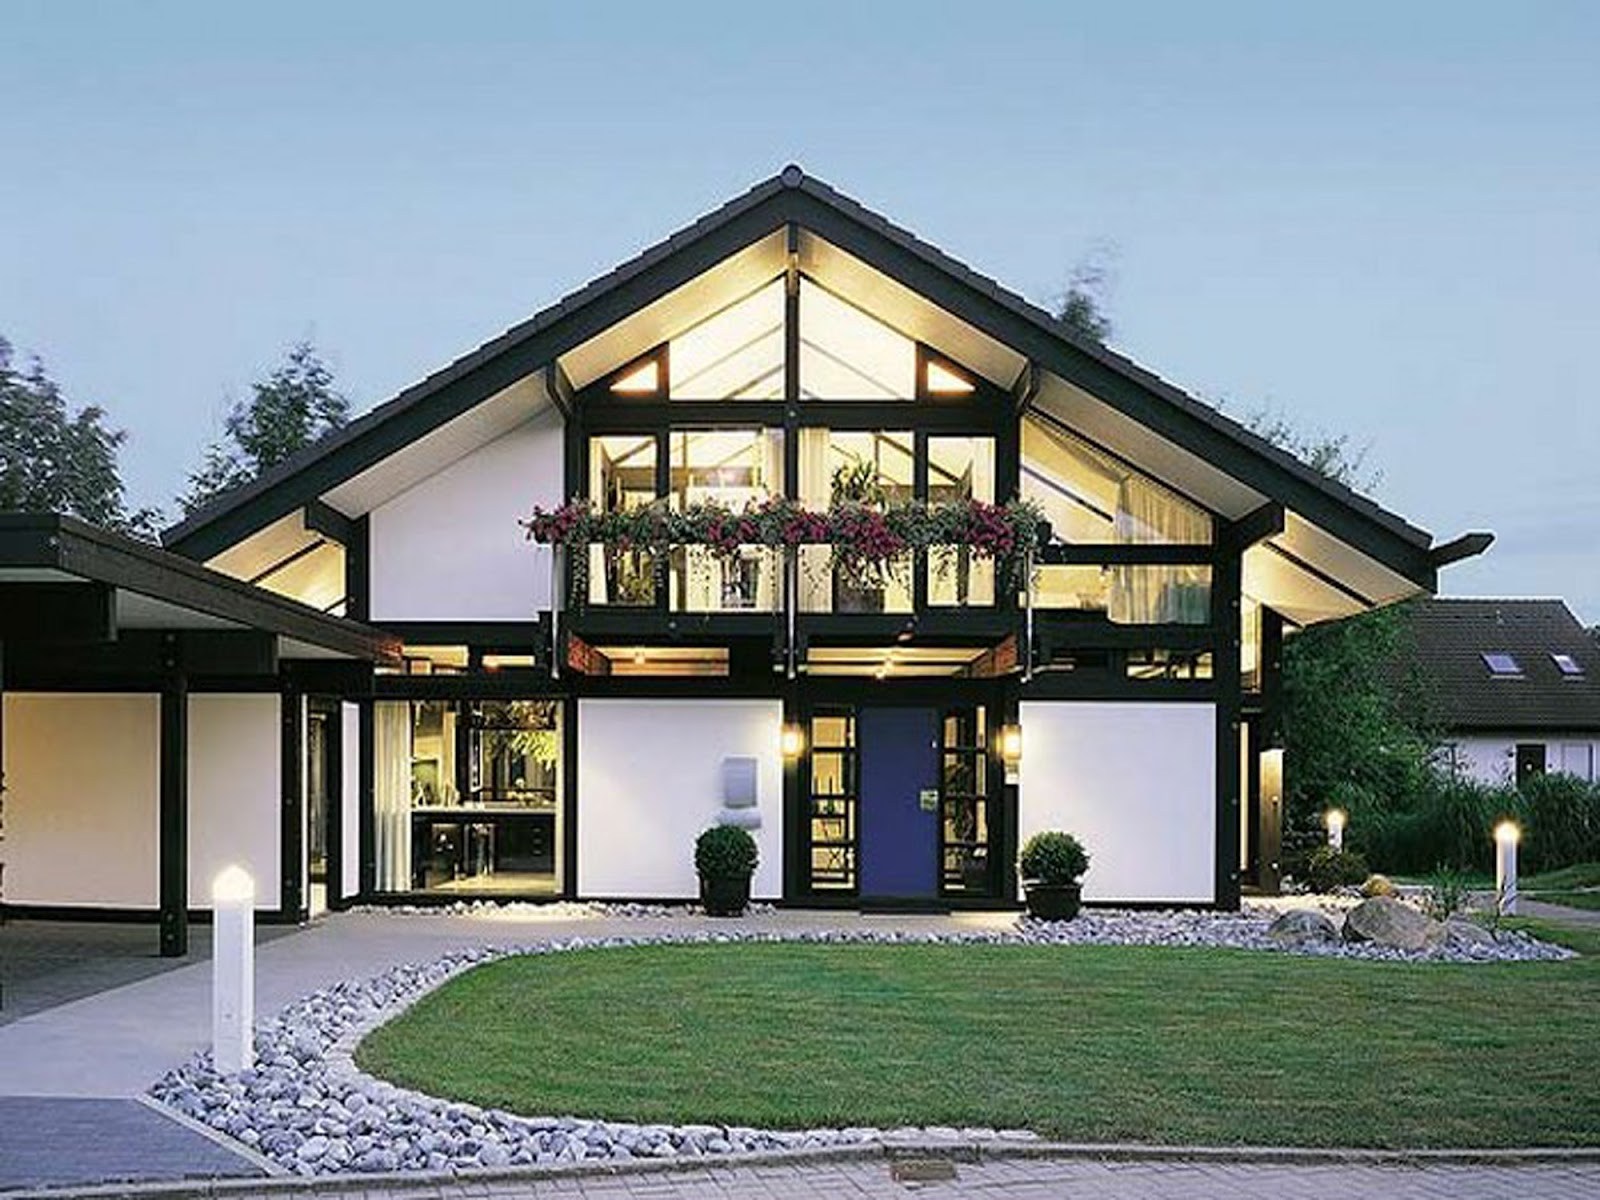 New home designs latest beautiful latest modern home designs New home layouts